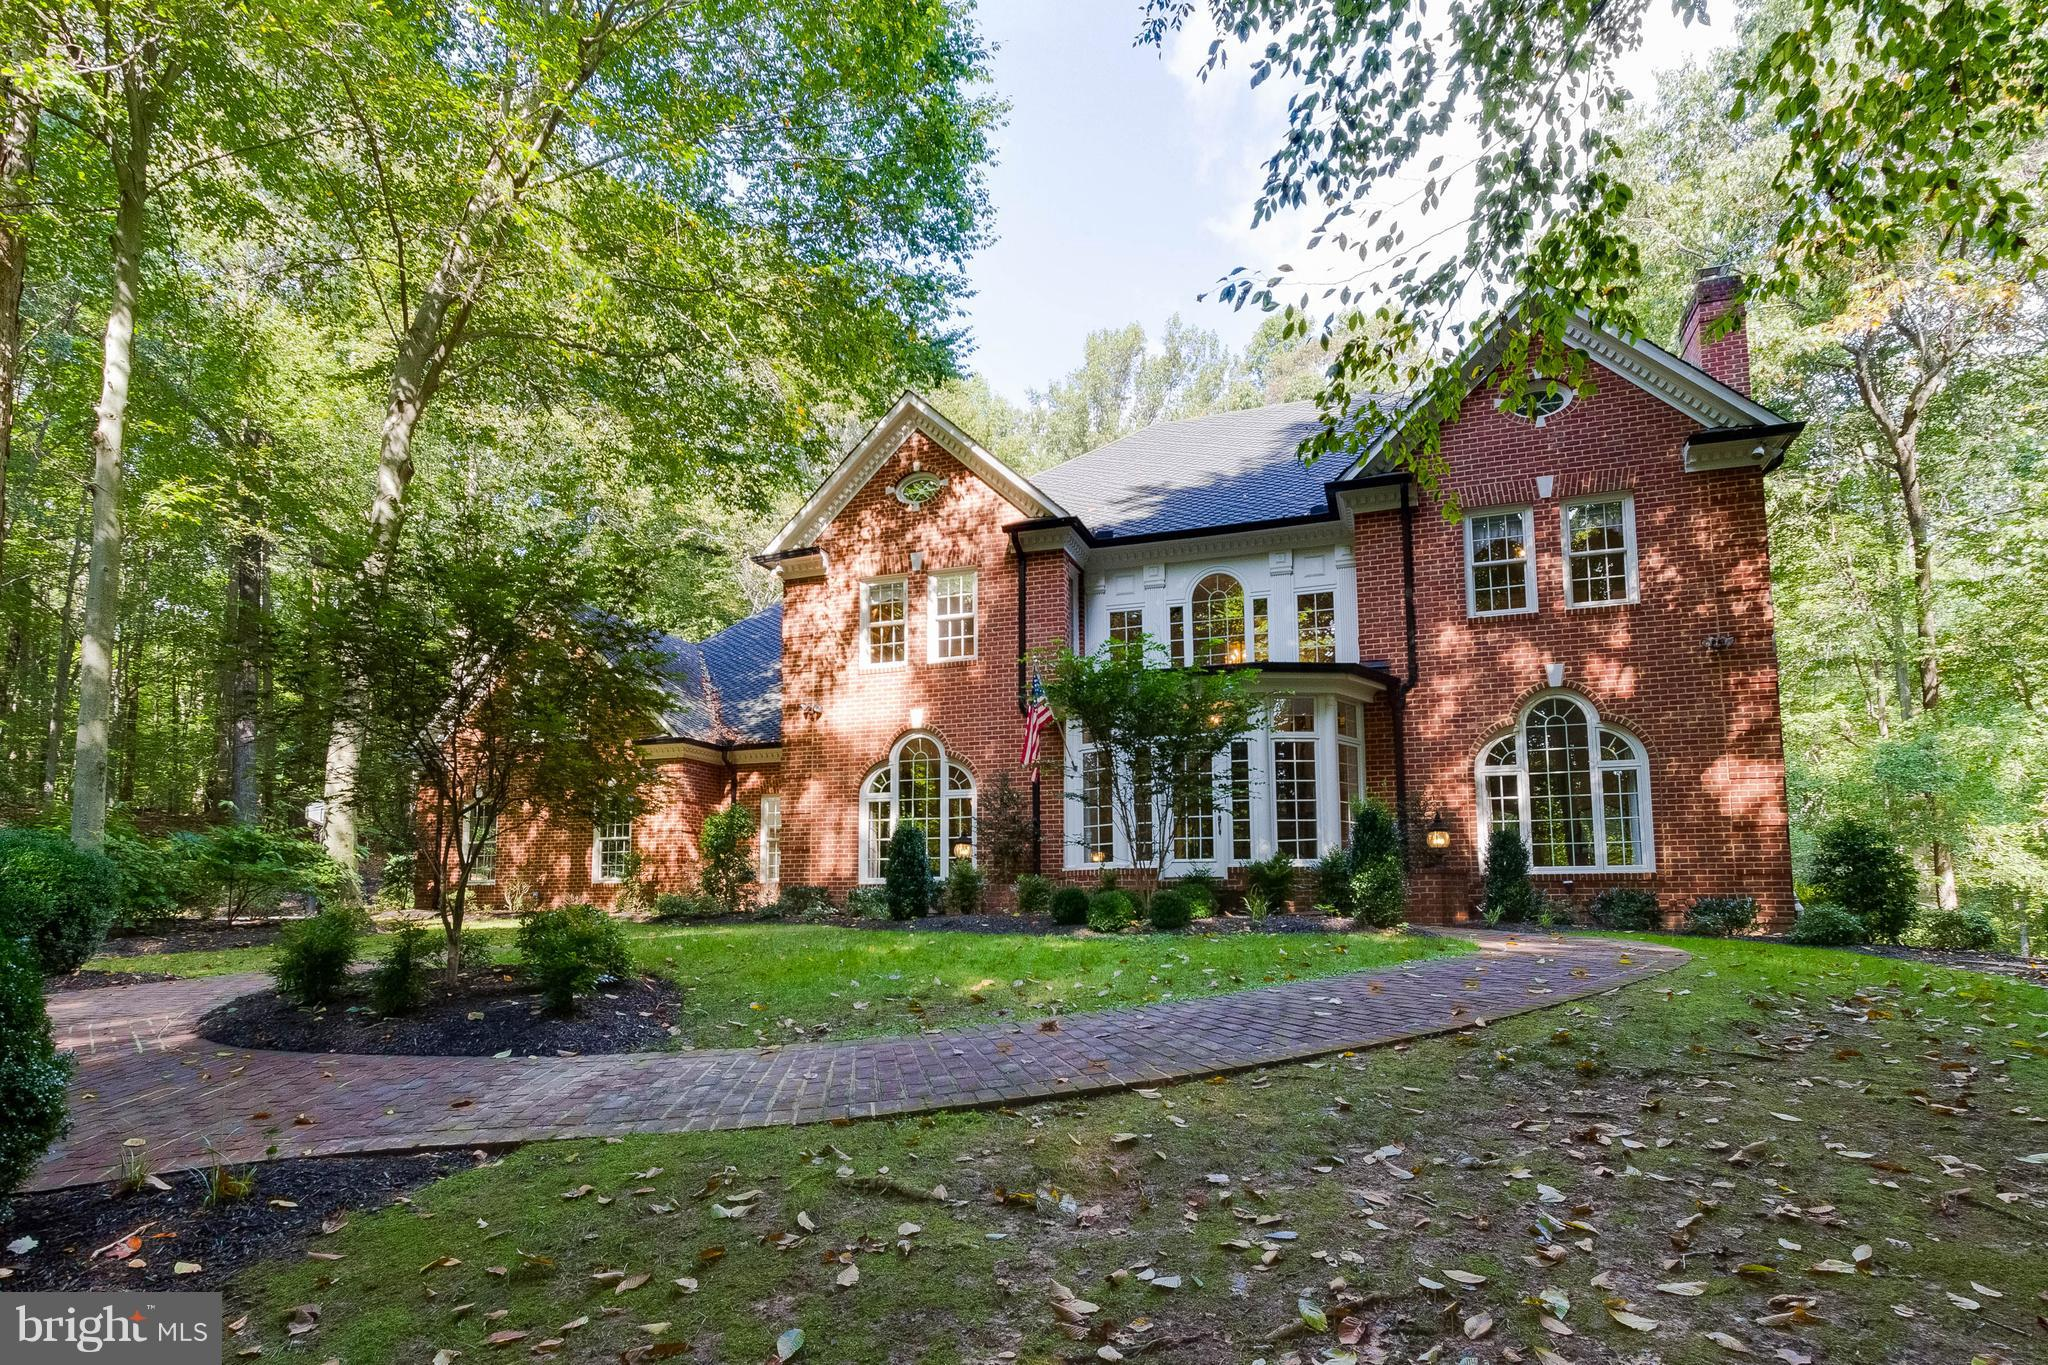 Custom-built, 4-level estate home on 5 pristine wooded acres in highly sought after Fairfax Station. Heated pool, lush gardens and expansive deck provide a great backdrop for entertaining. Gourmet kitchen, spacious rooms, 3 fireplaces and en-suite basement. Truly, a remarkable home that will not disappoint.